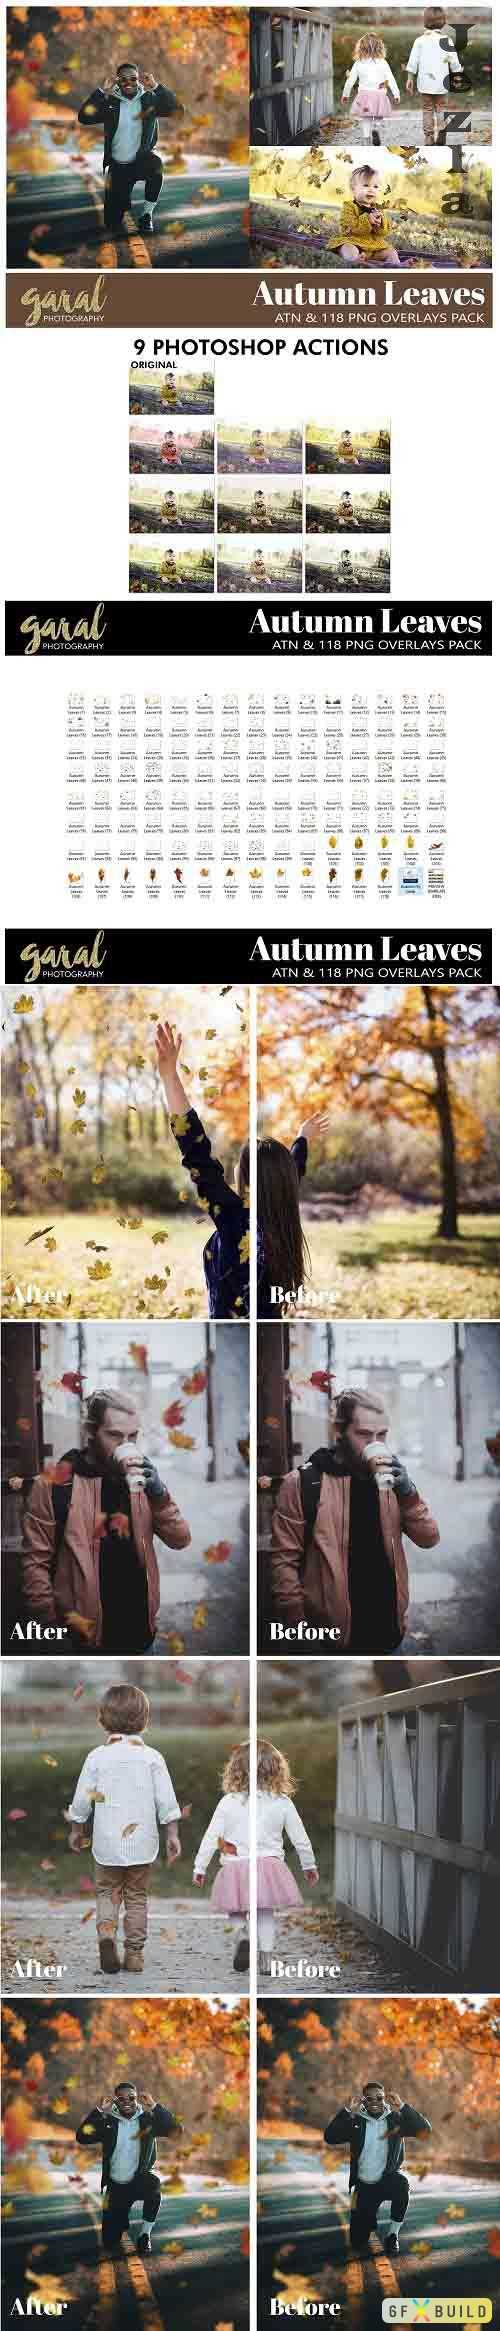 118 Falling Leaves Overlays And Ps Actions - 664526